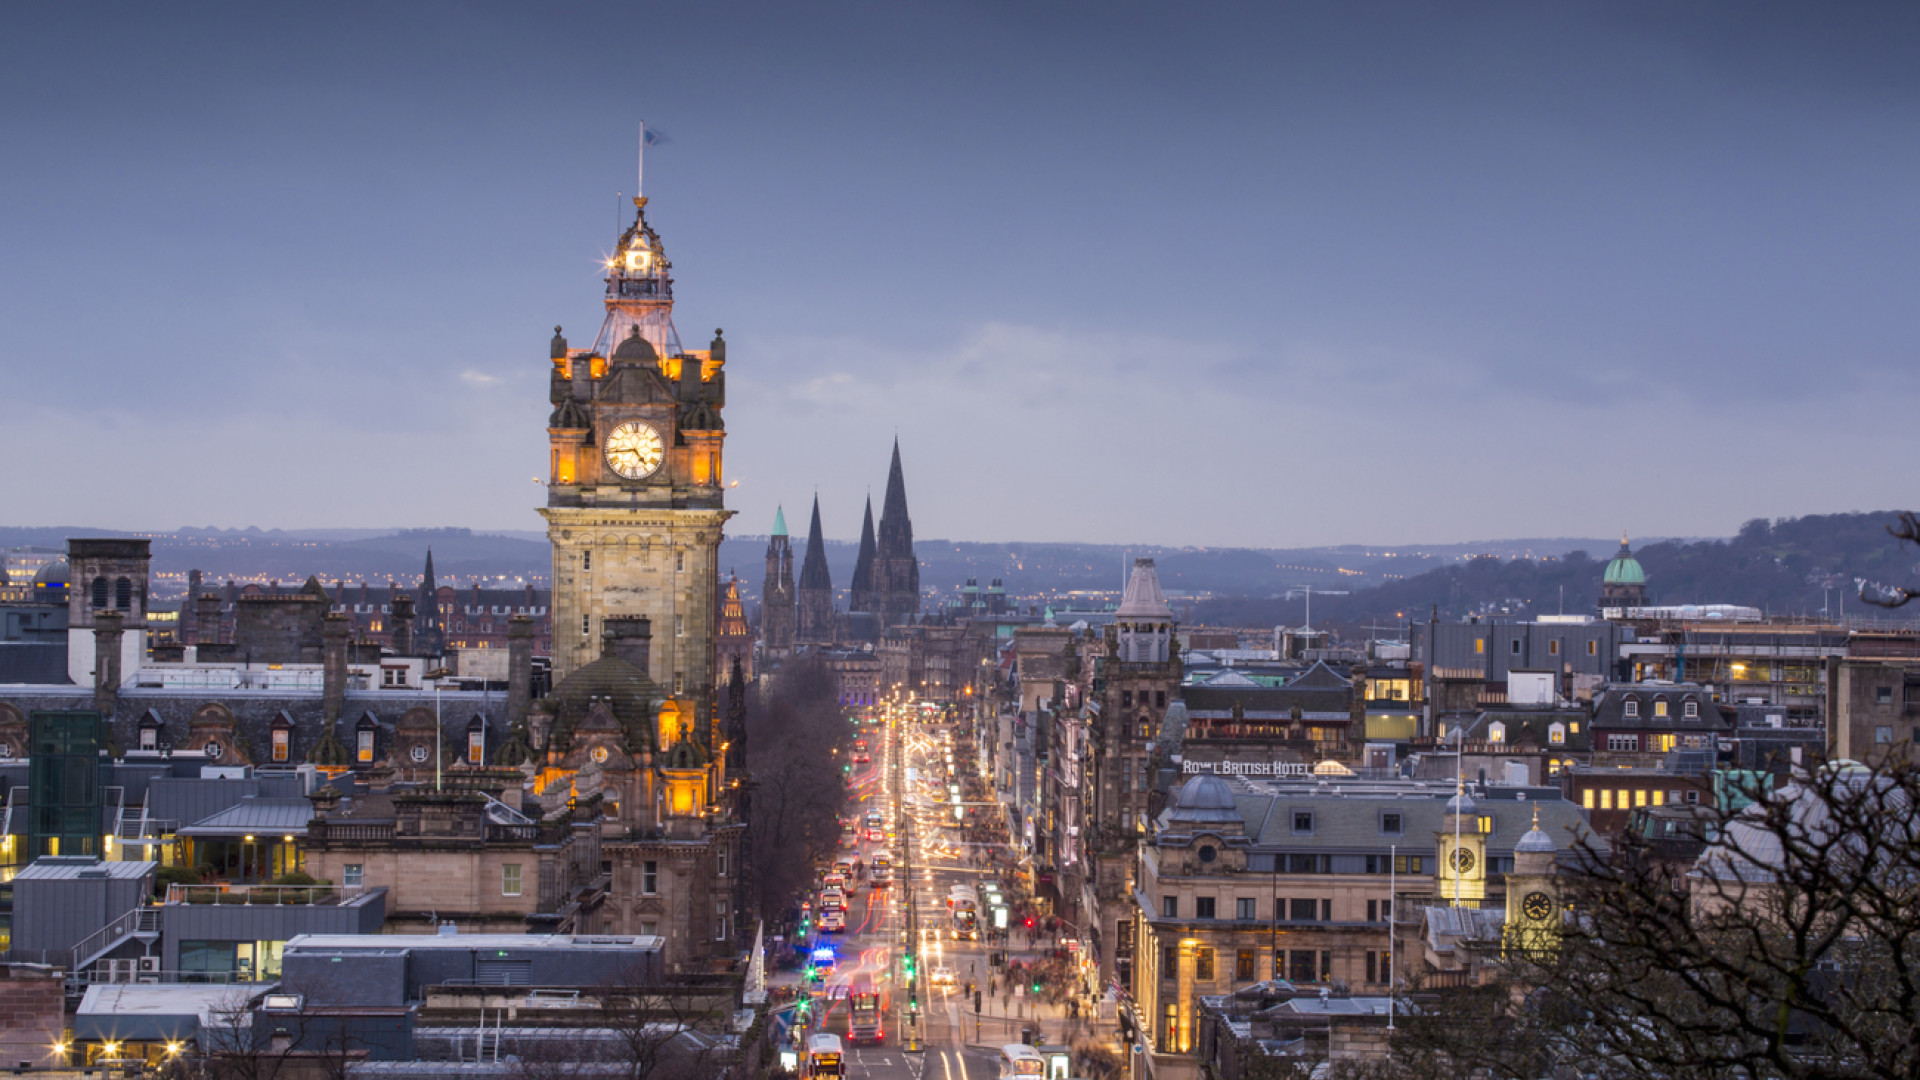 The Balmoral Hotel clock tower and Princes Street seen from Calton Hill, Edinburgh